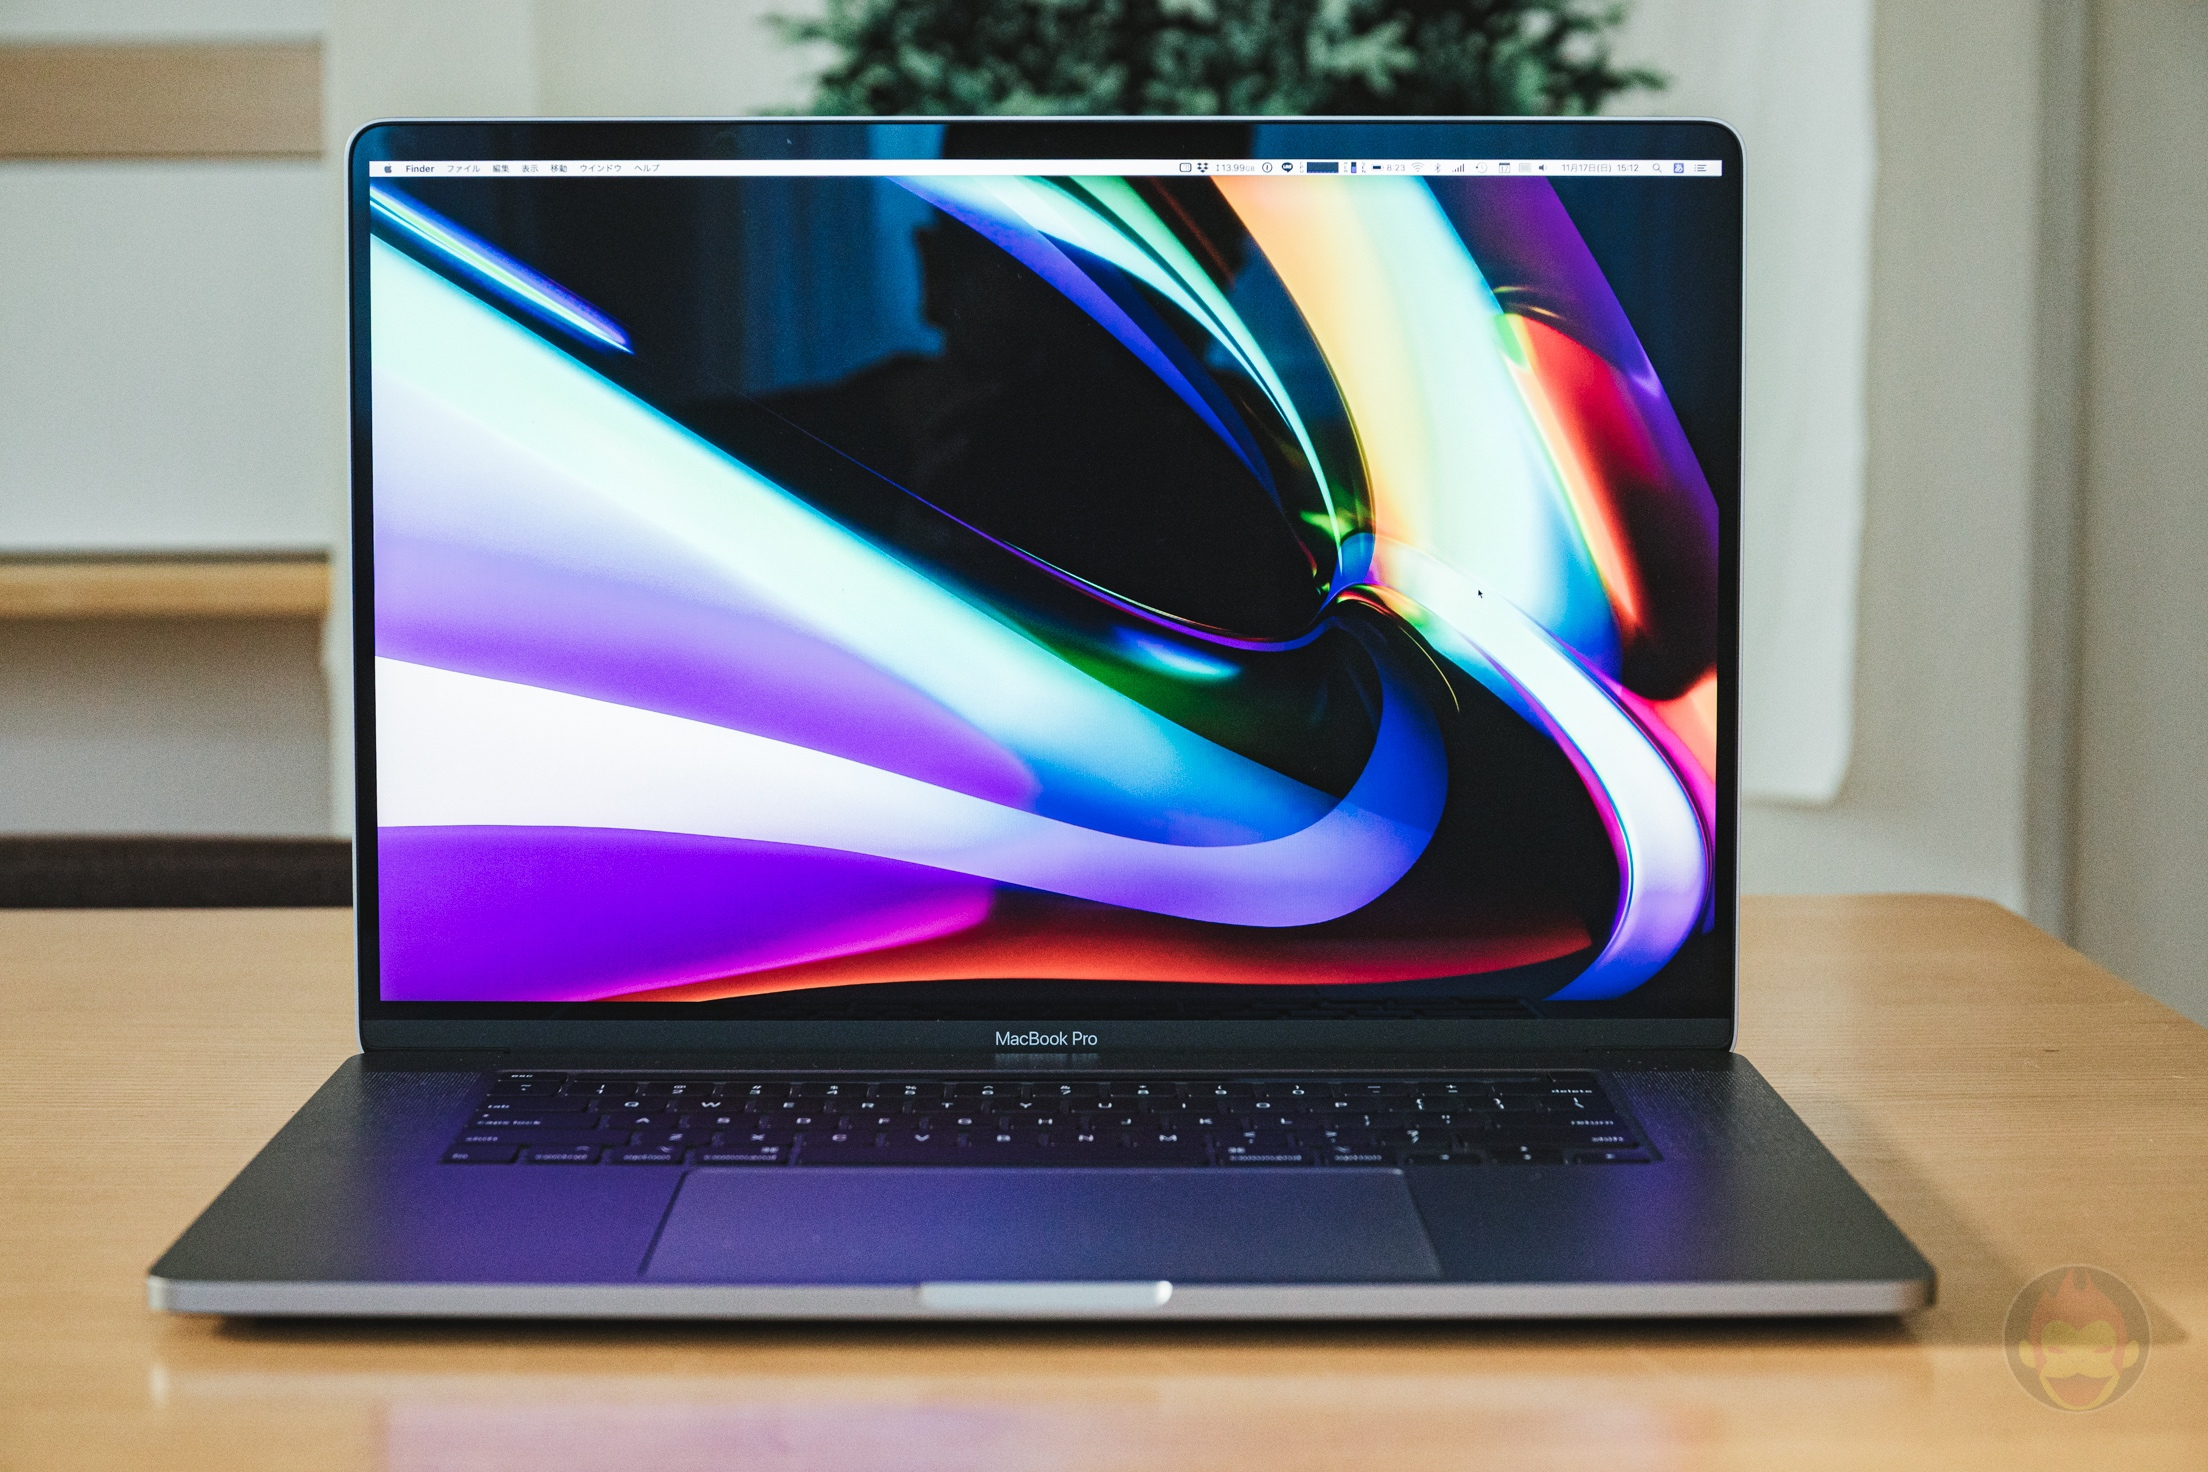 16inch-macbookpro-2019-review-10.jpg